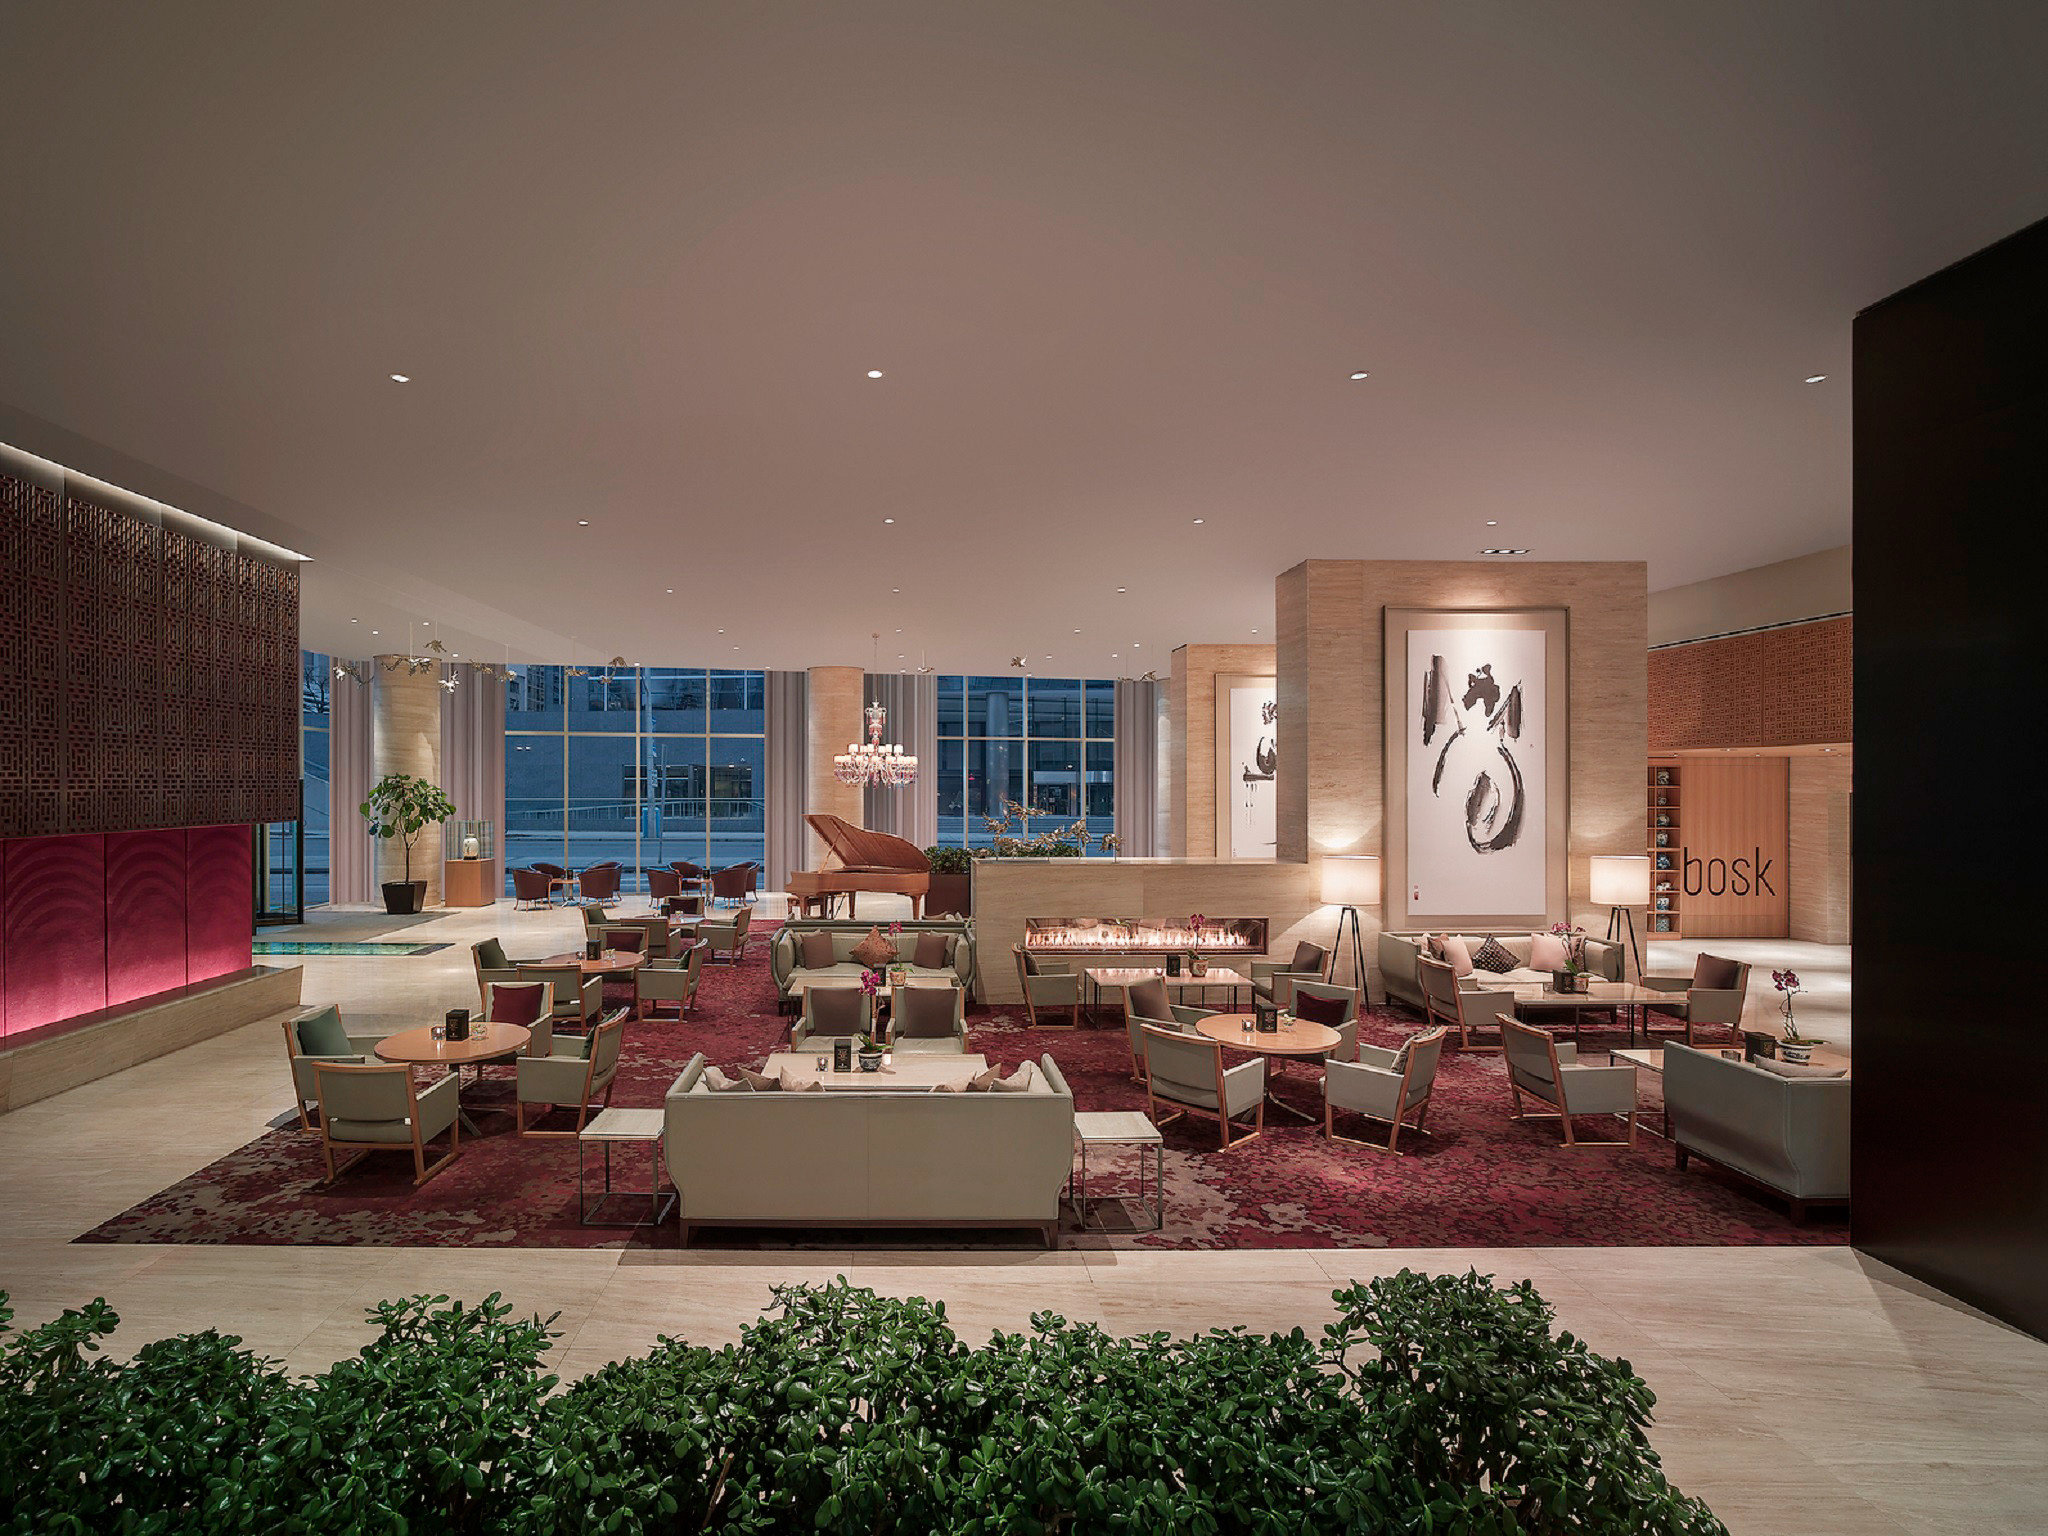 Dining Drink Eat Hip Modern Scenic views Lobby Architecture house home living room lighting mansion tourist attraction